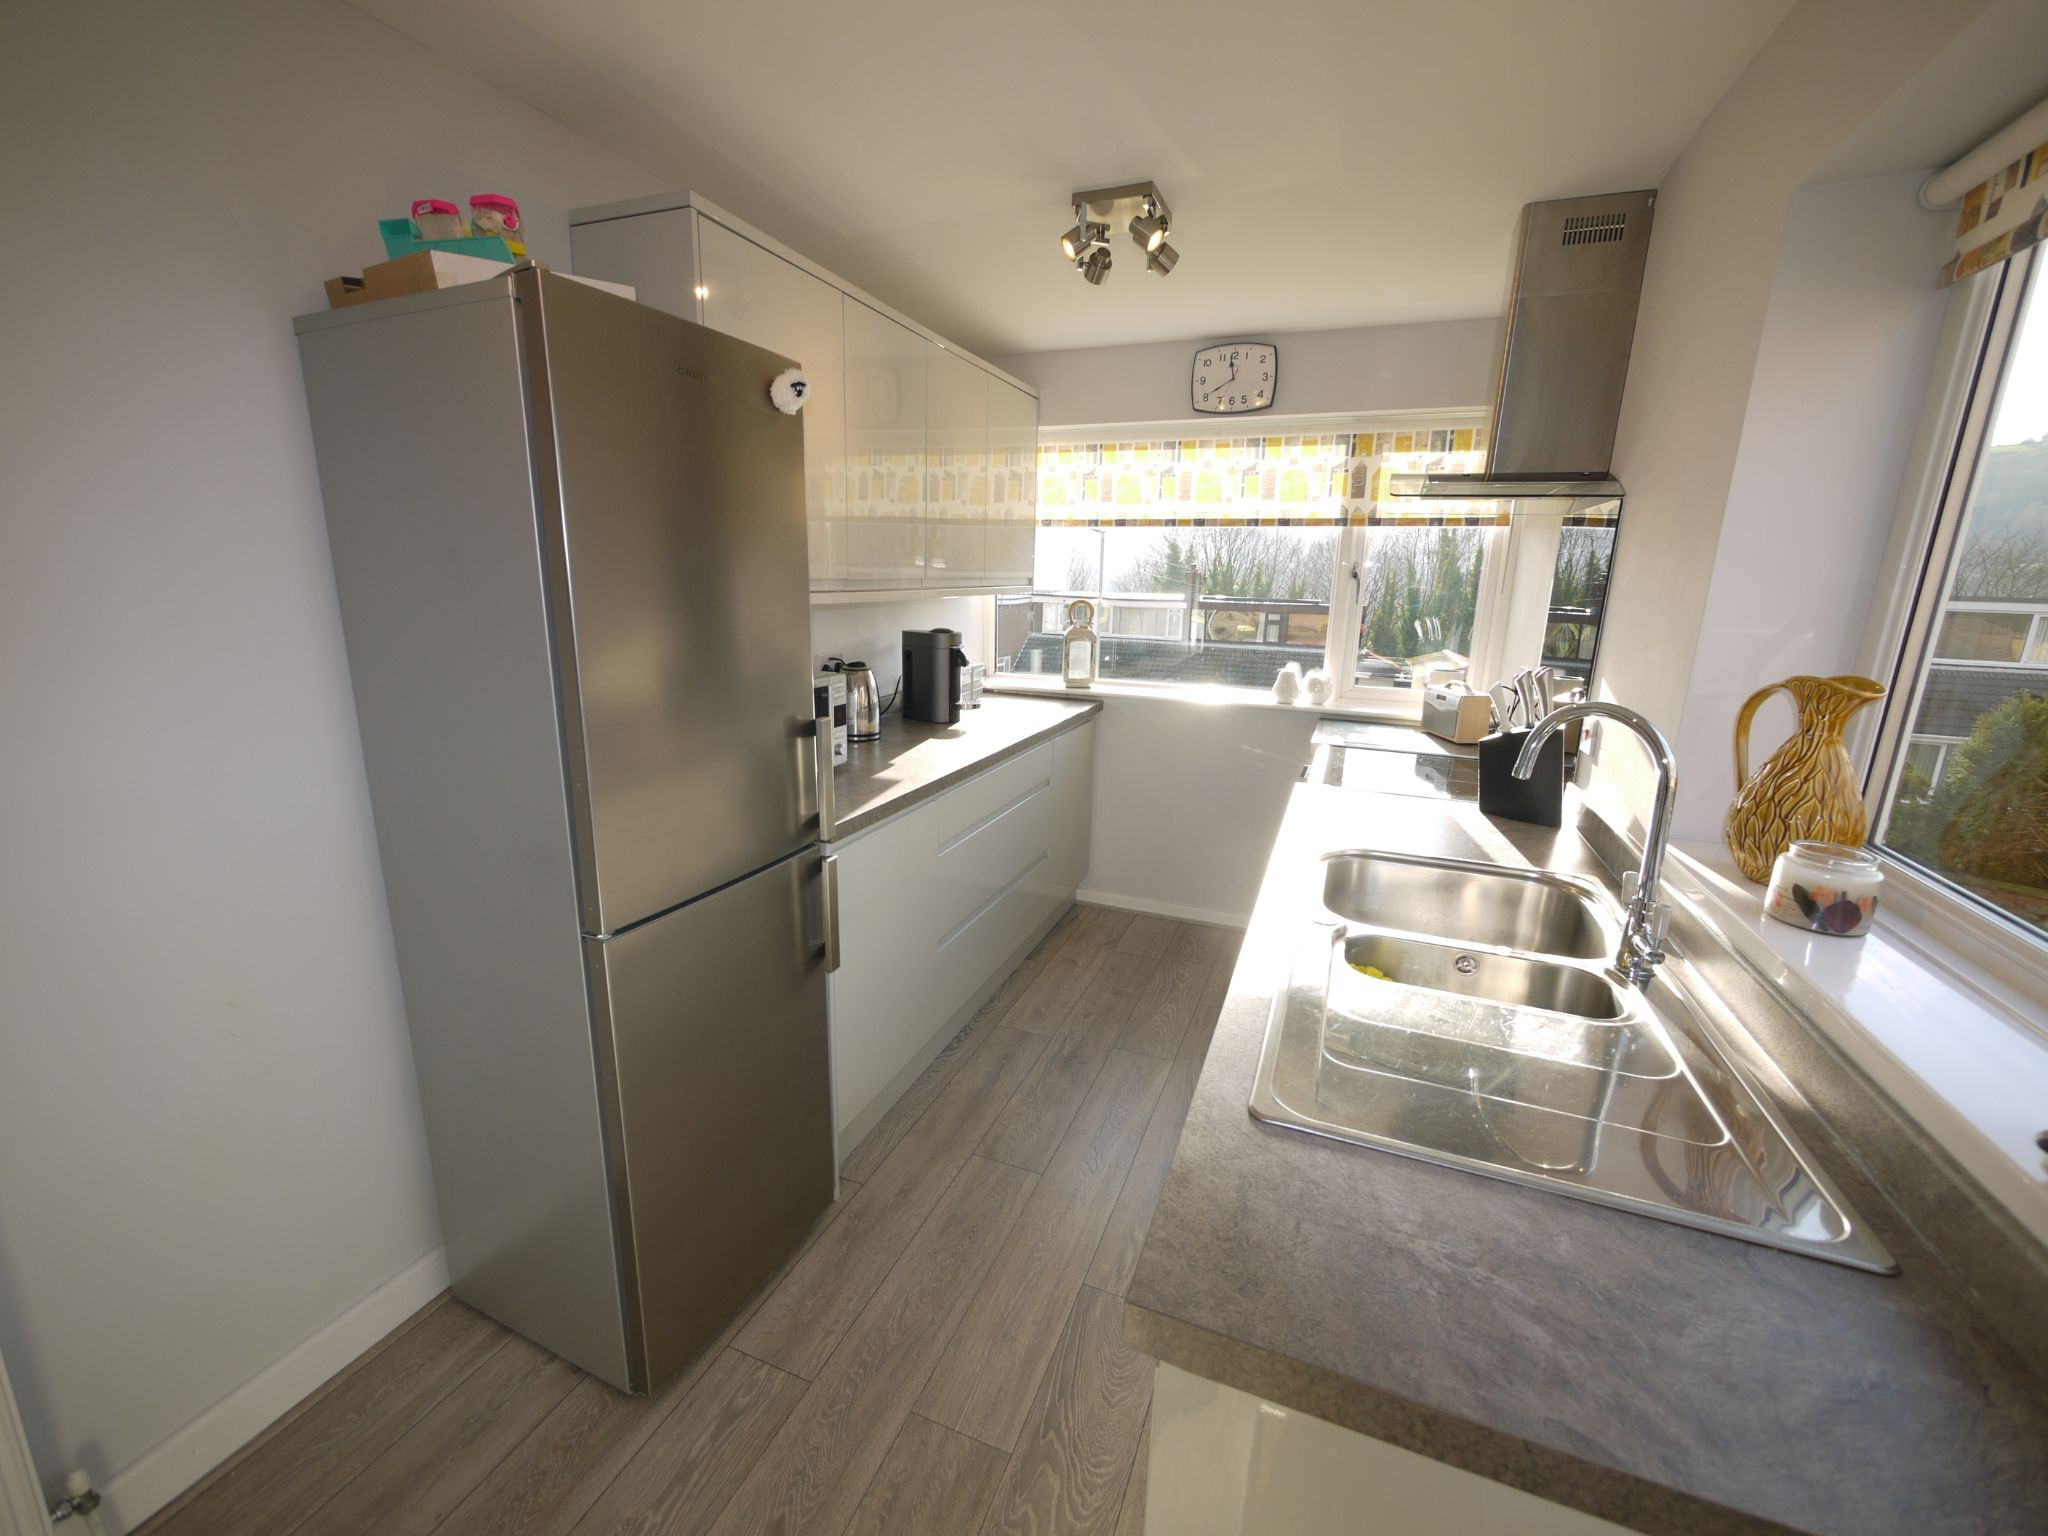 3 bedroom semi-detached house SSTC in Halifax - Kitchen.